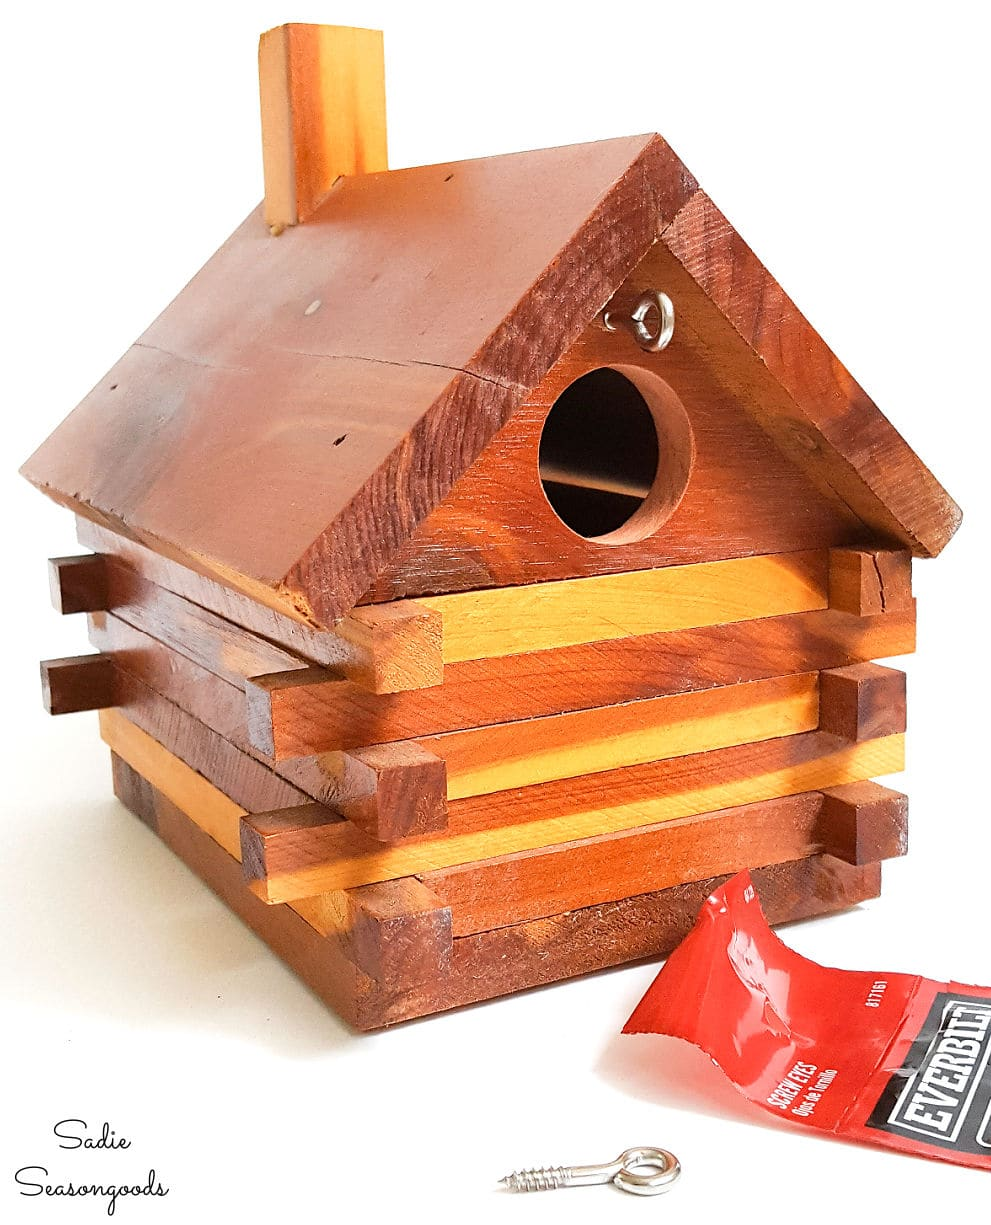 Screw eyes for hanging a log cabin bird house